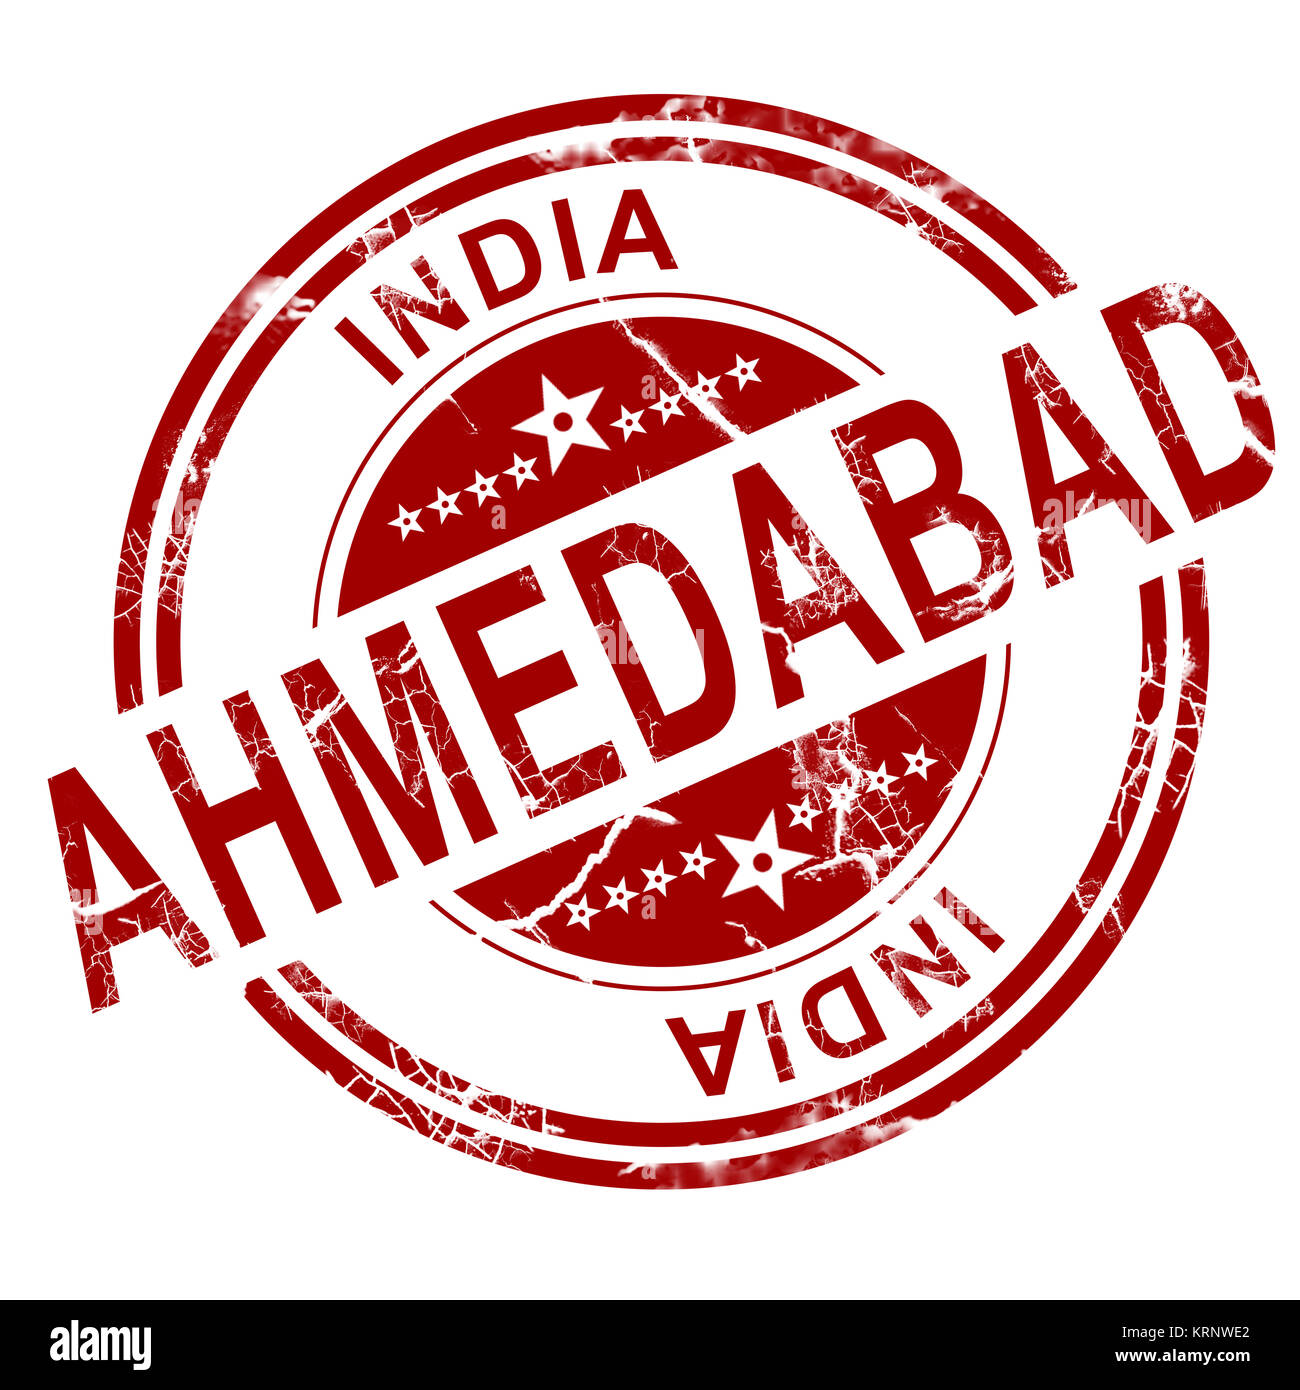 Red Ahmedabad stamp - Stock Image